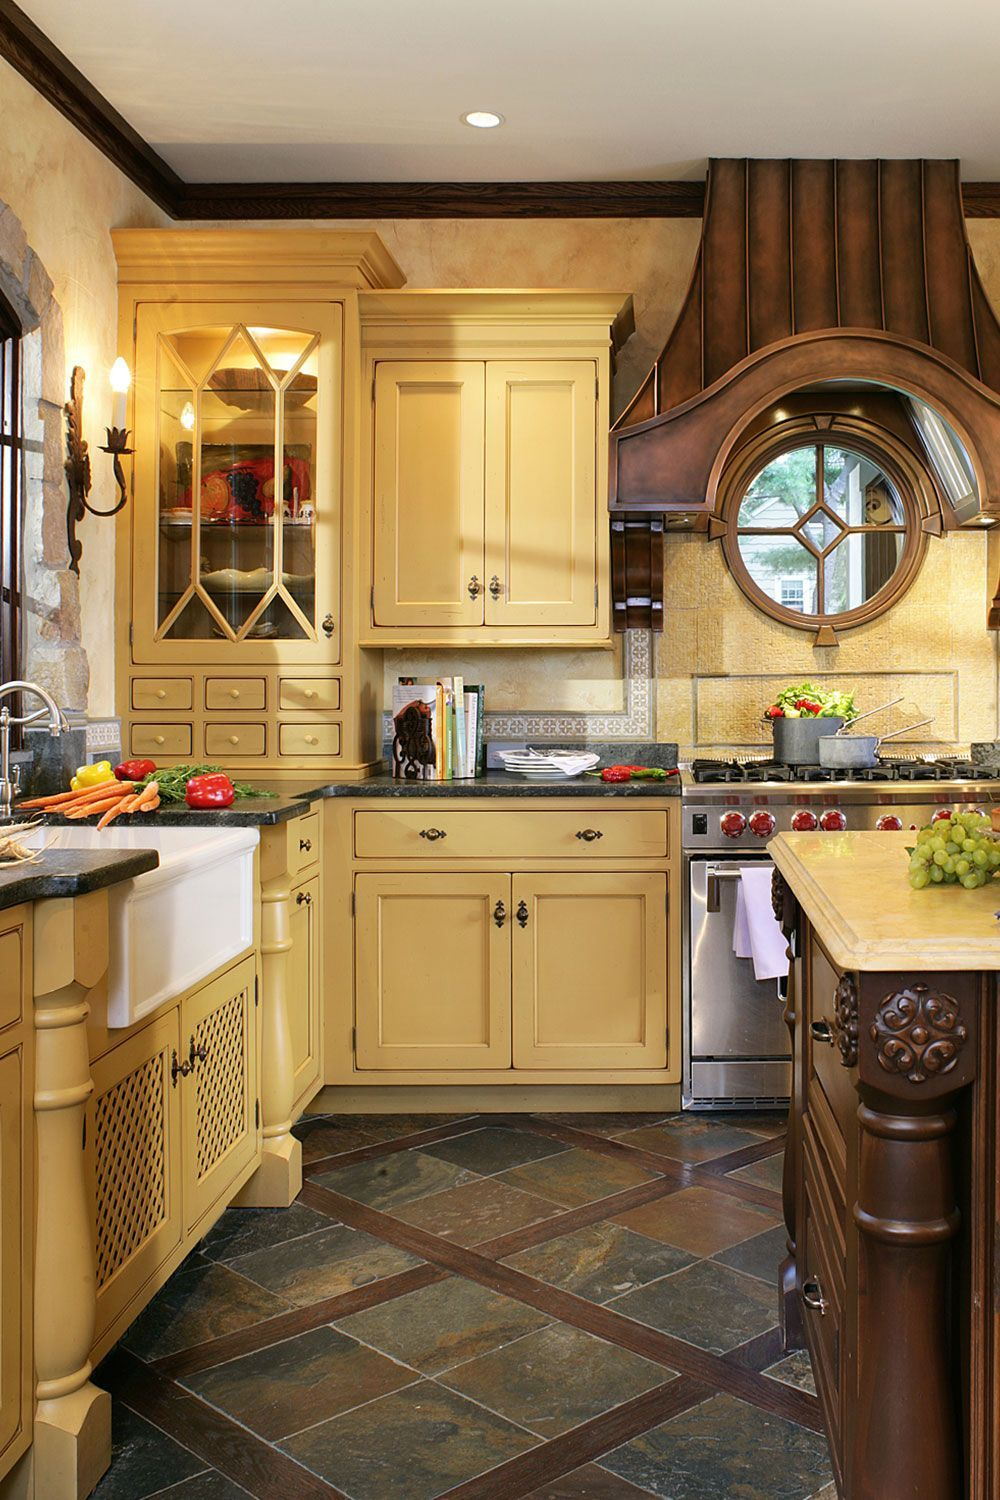 4 Steps To Choose Kitchen Paint Colors With Oak Cabinets Interior Decorating Colors Grey Kitchen Walls Simple Kitchen Design Oak Kitchen Cabinets